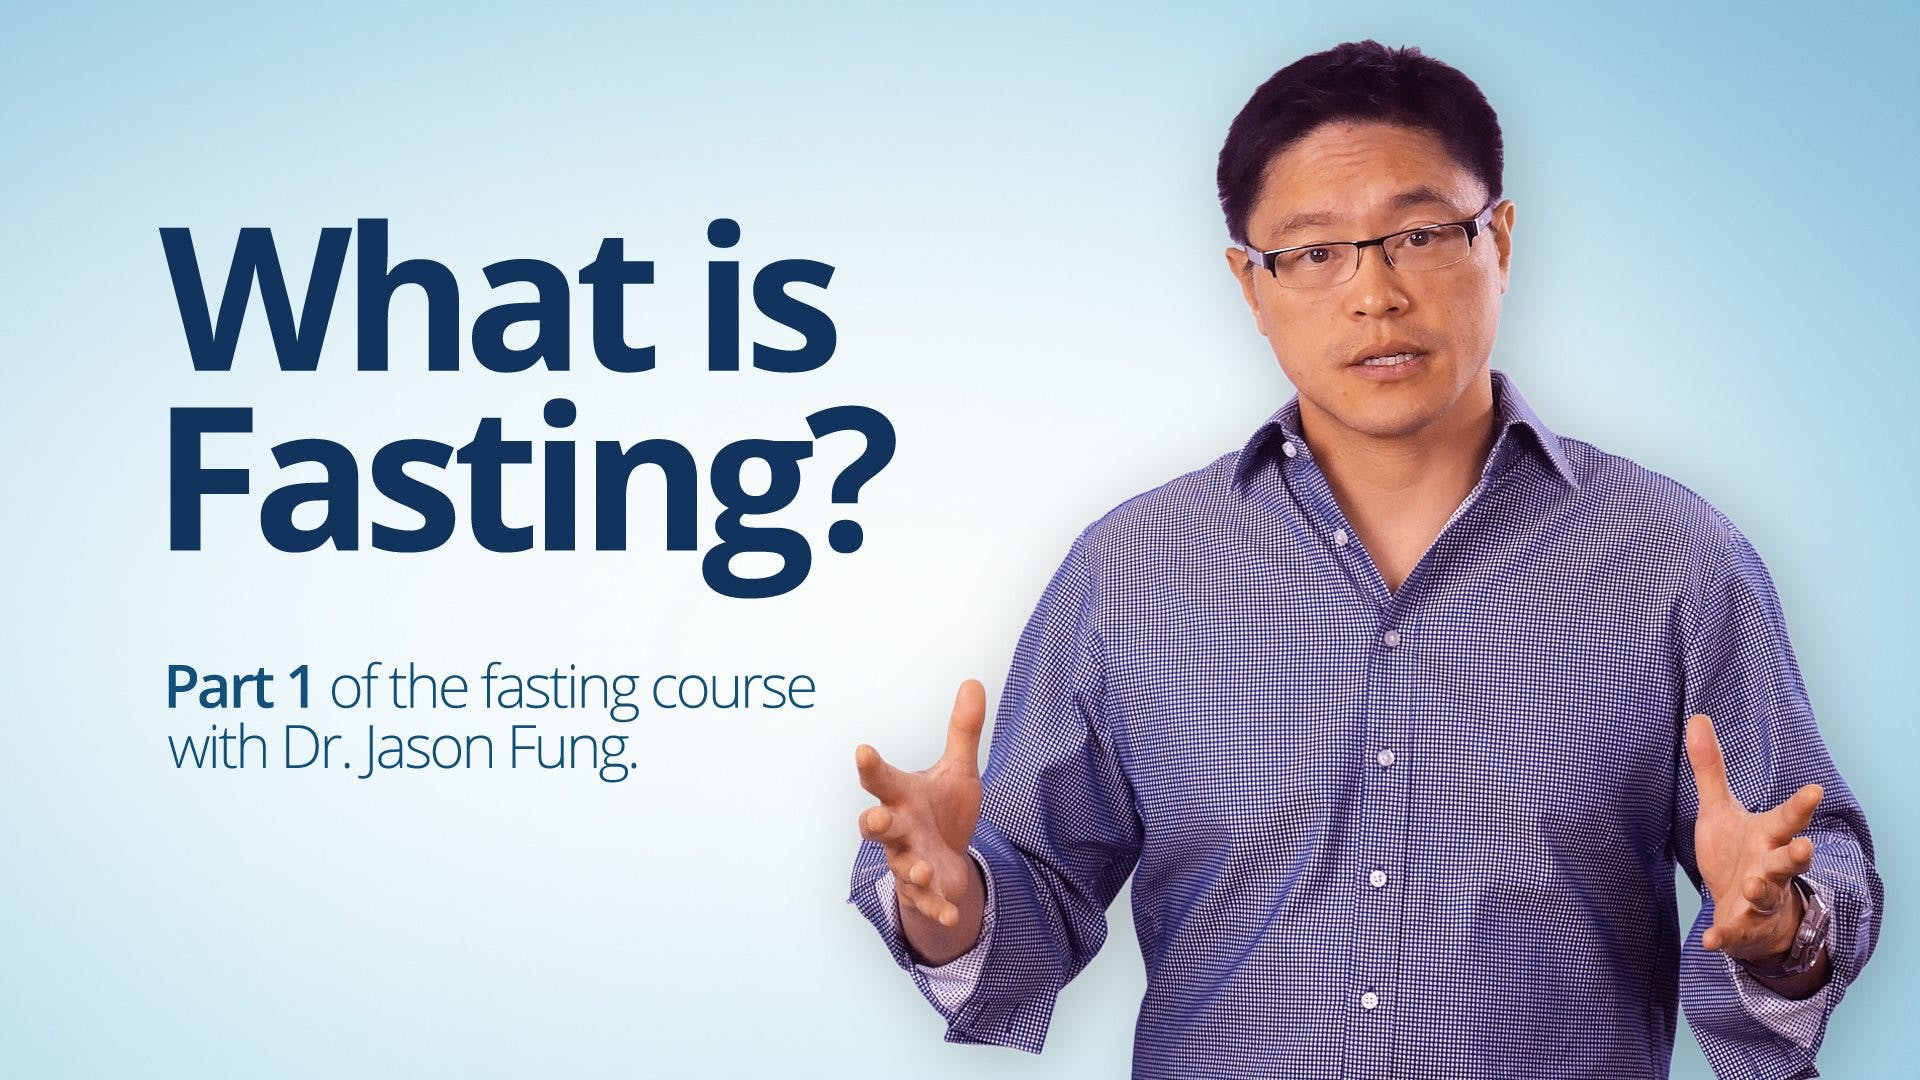 What is fasting?